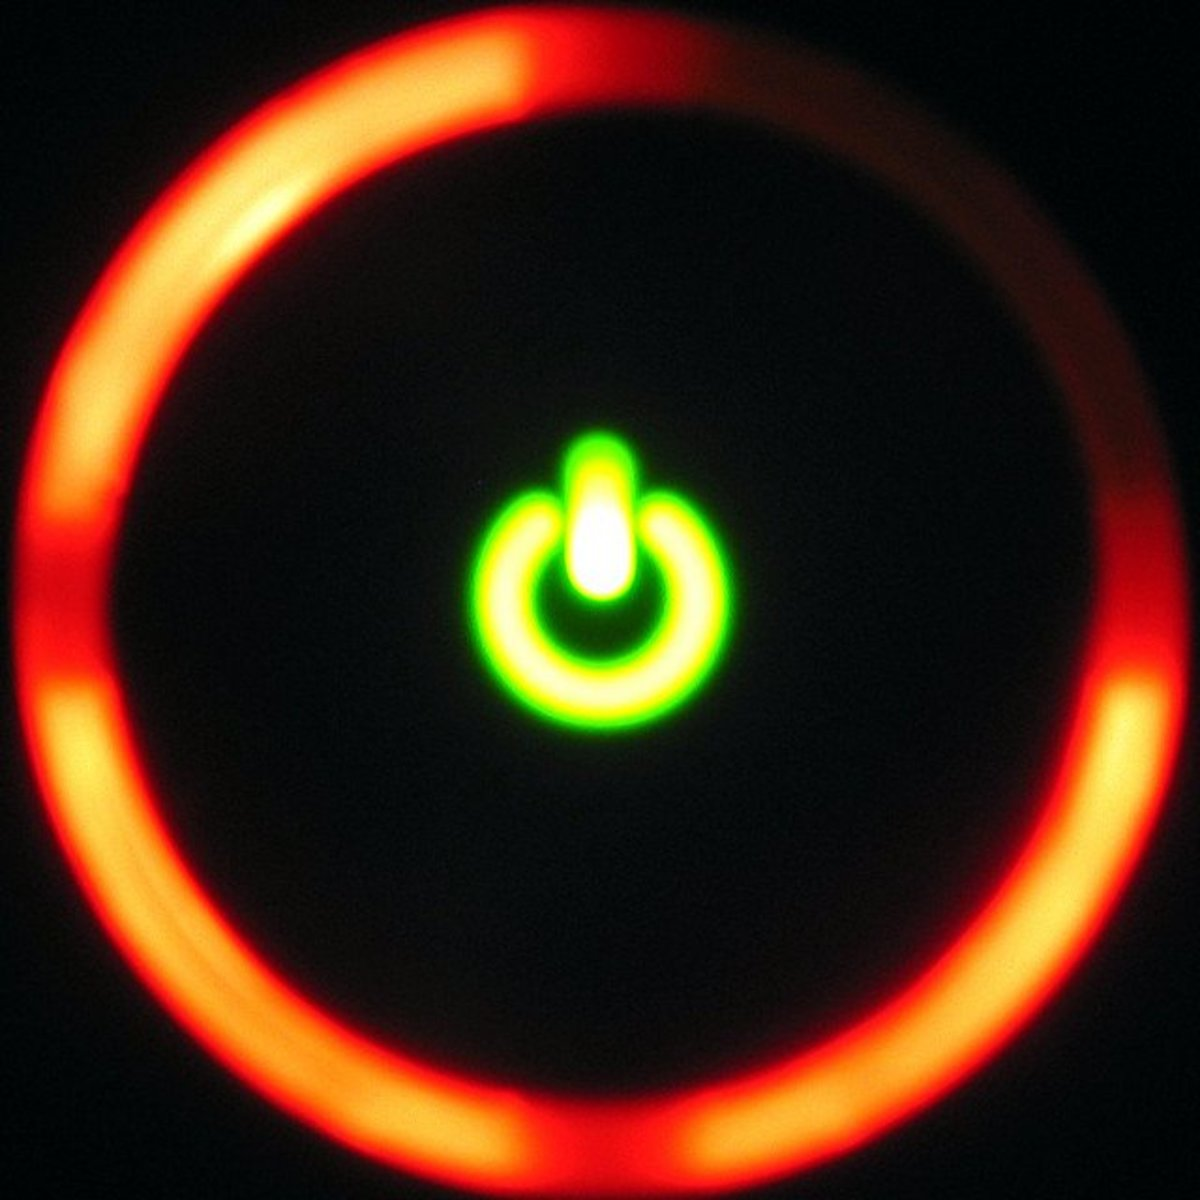 How To Avoid The Red Ring of Death (On Your Xbox 360)